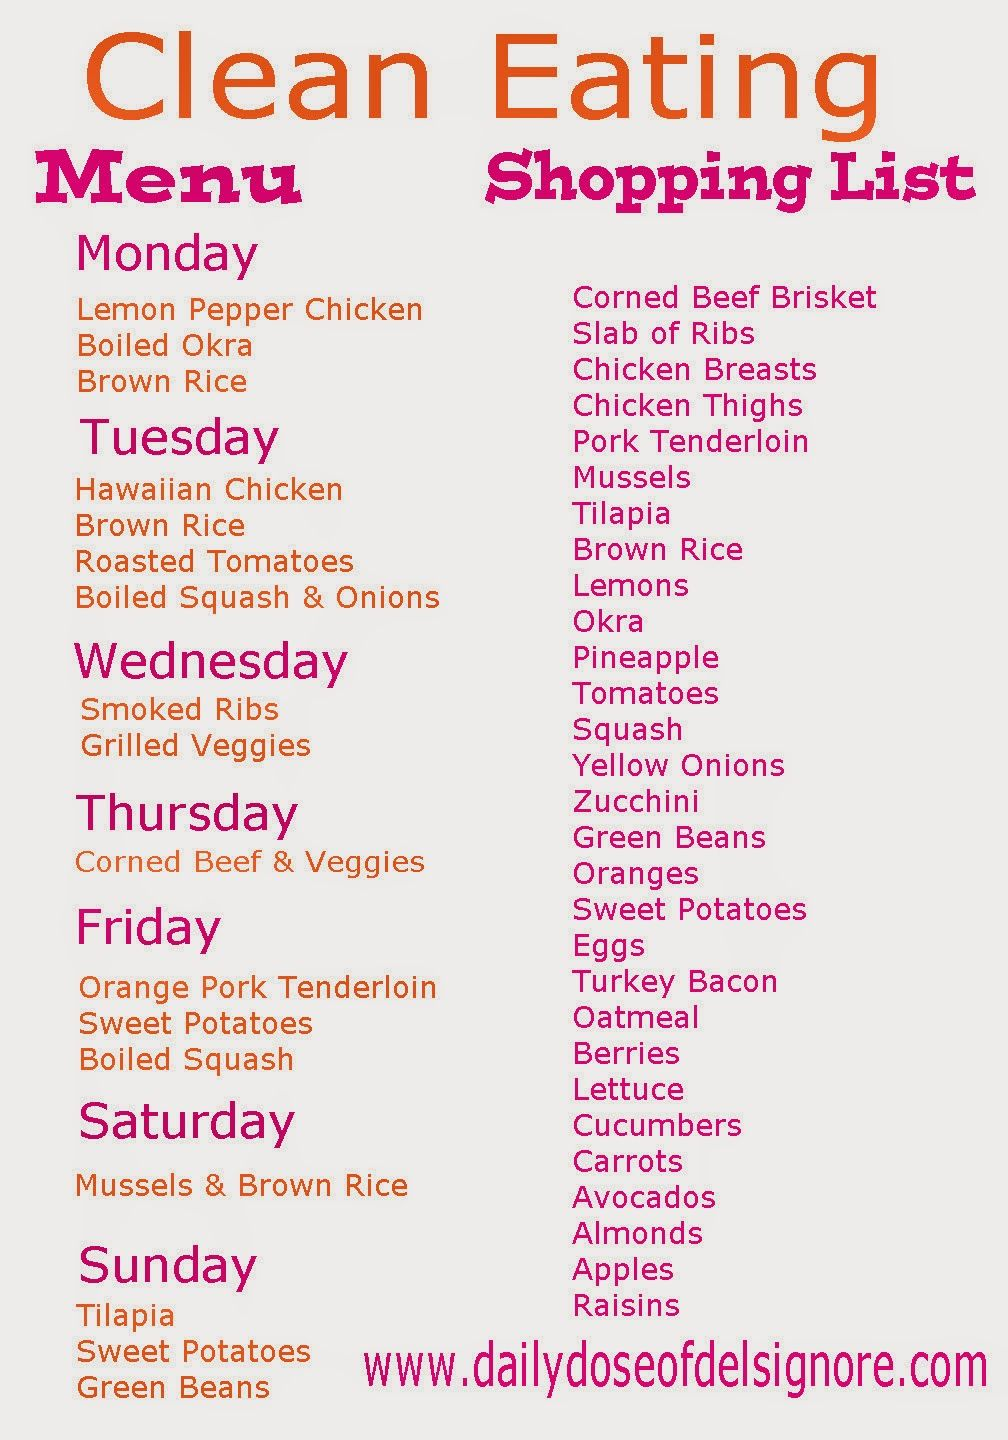 Eat Clean On A Budget Menu And Shopping List Delicious Clean Eating Healthy Eating Plate Clean Eating Menu